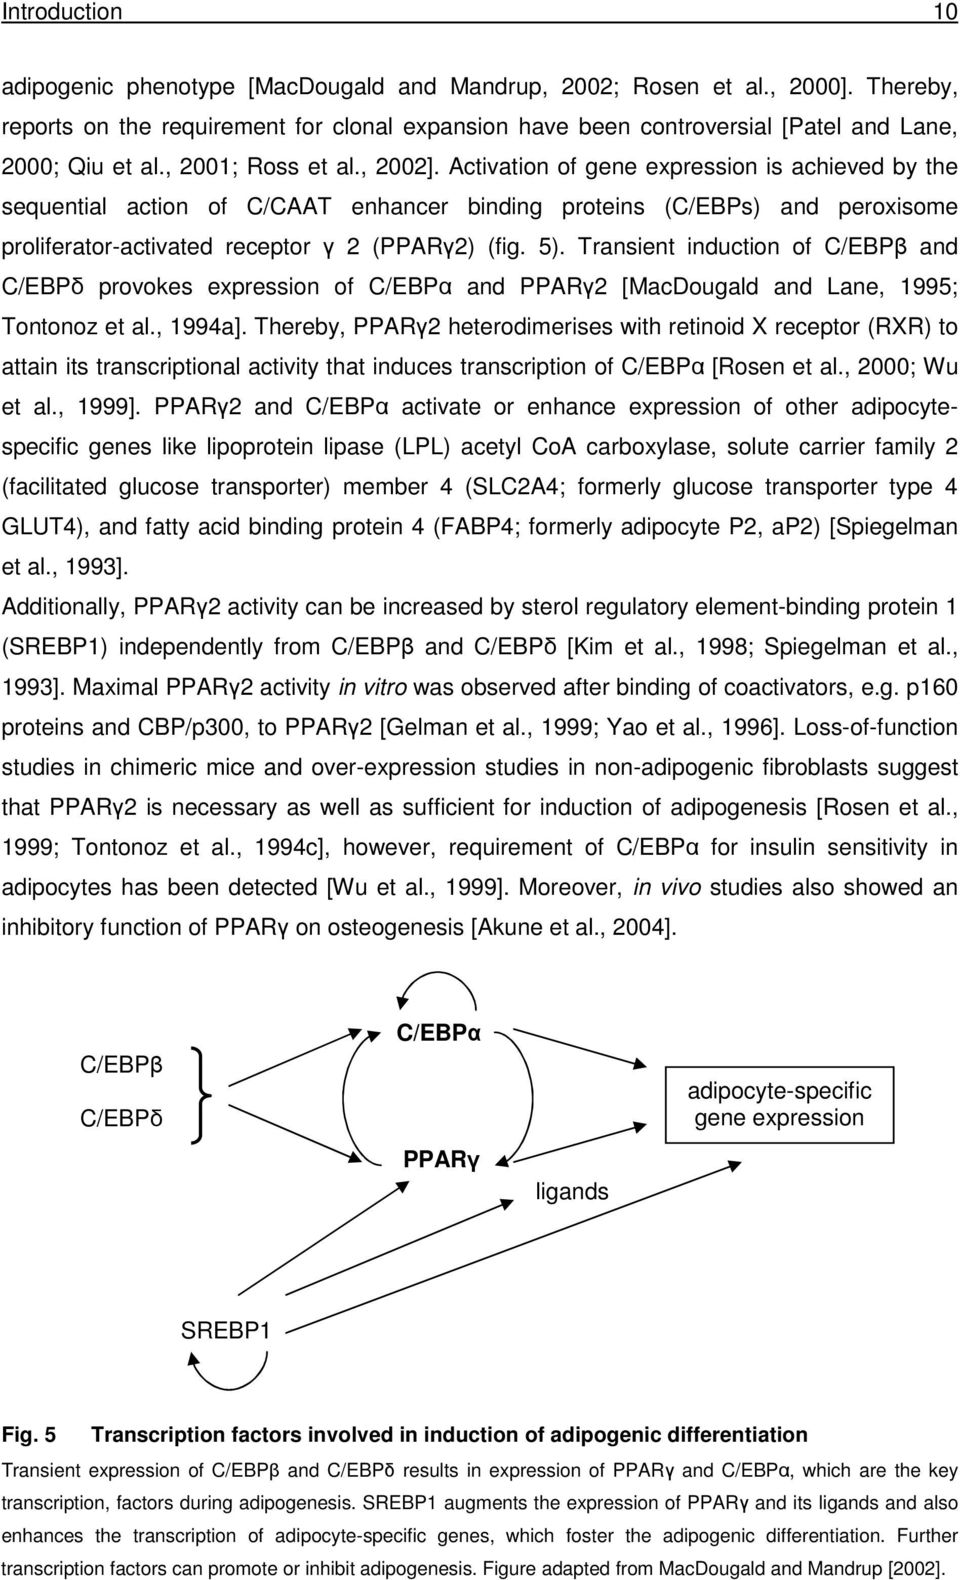 Activation of gene expression is achieved by the sequential action of C/CAAT enhancer binding proteins (C/EBPs) and peroxisome proliferator-activated receptor γ 2 (PPARγ2) (fig. 5).